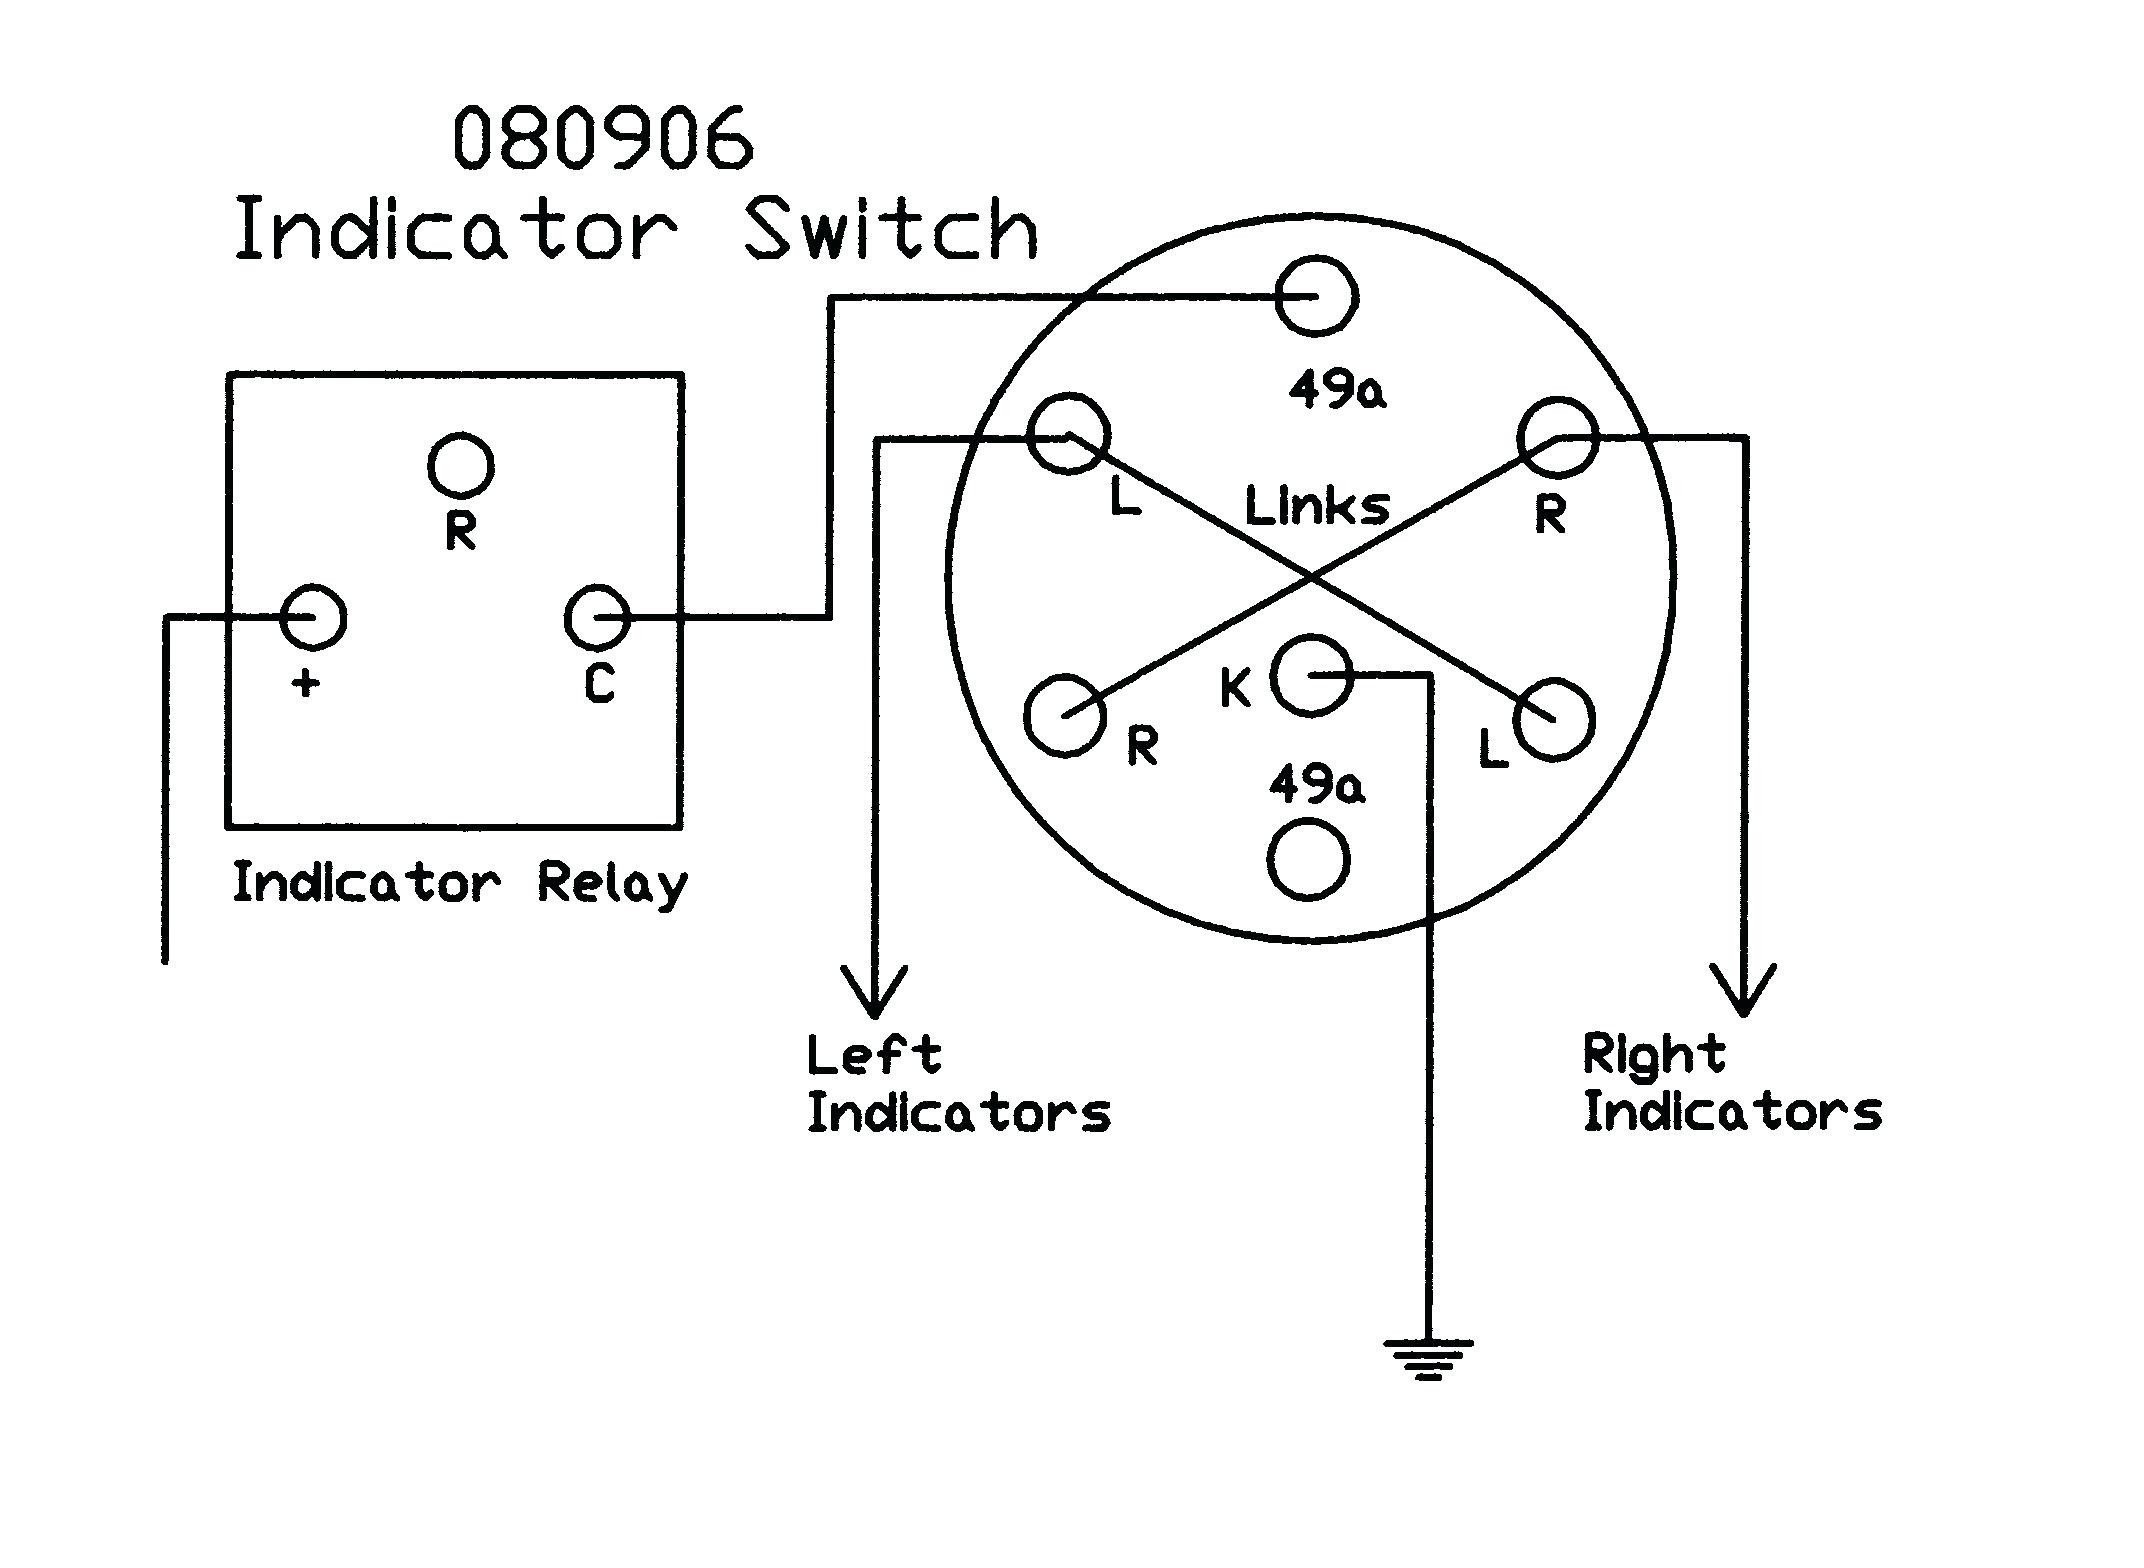 3 Position Selector Switch Wiring Diagram 3 Position Selector Switch Wiring Diagram Luxury Wiring Diagram for Of 3 Position Selector Switch Wiring Diagram